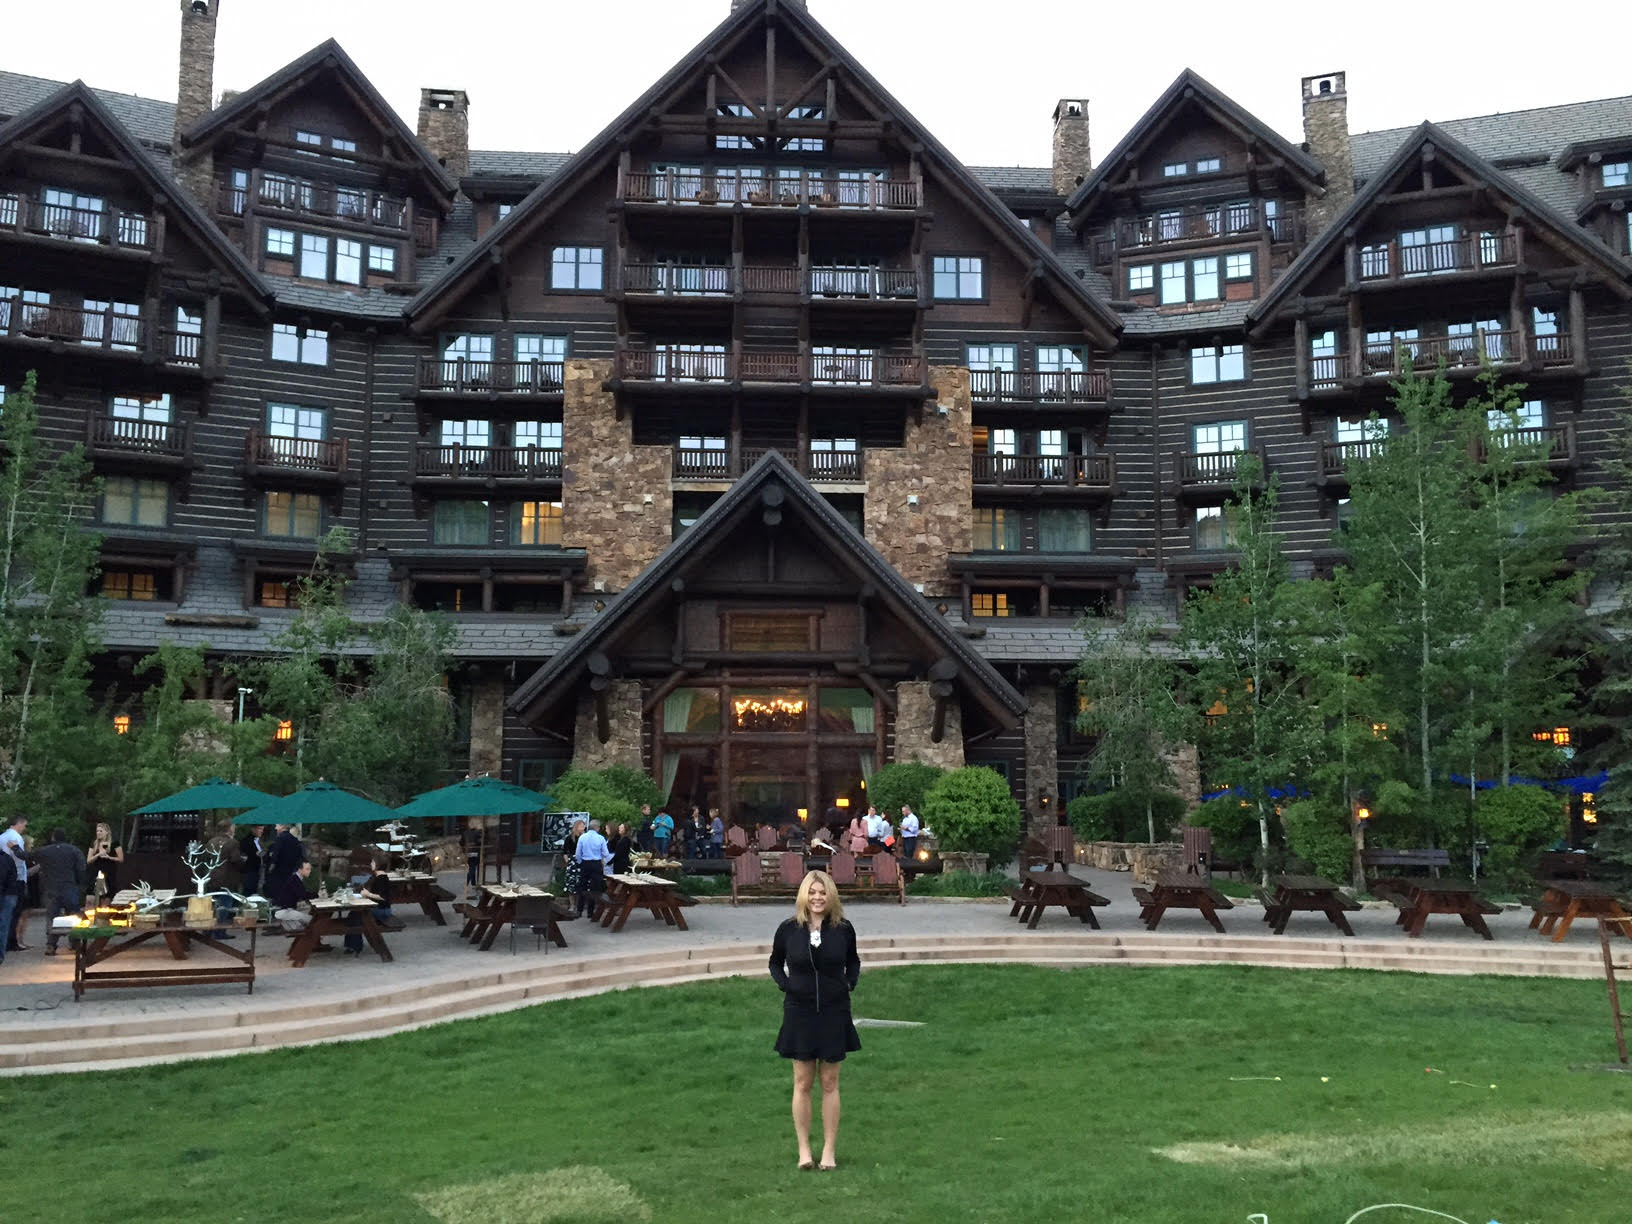 Speaking at the Ritz-Carlton annual meeting in Bachelor Gulch, Colorado